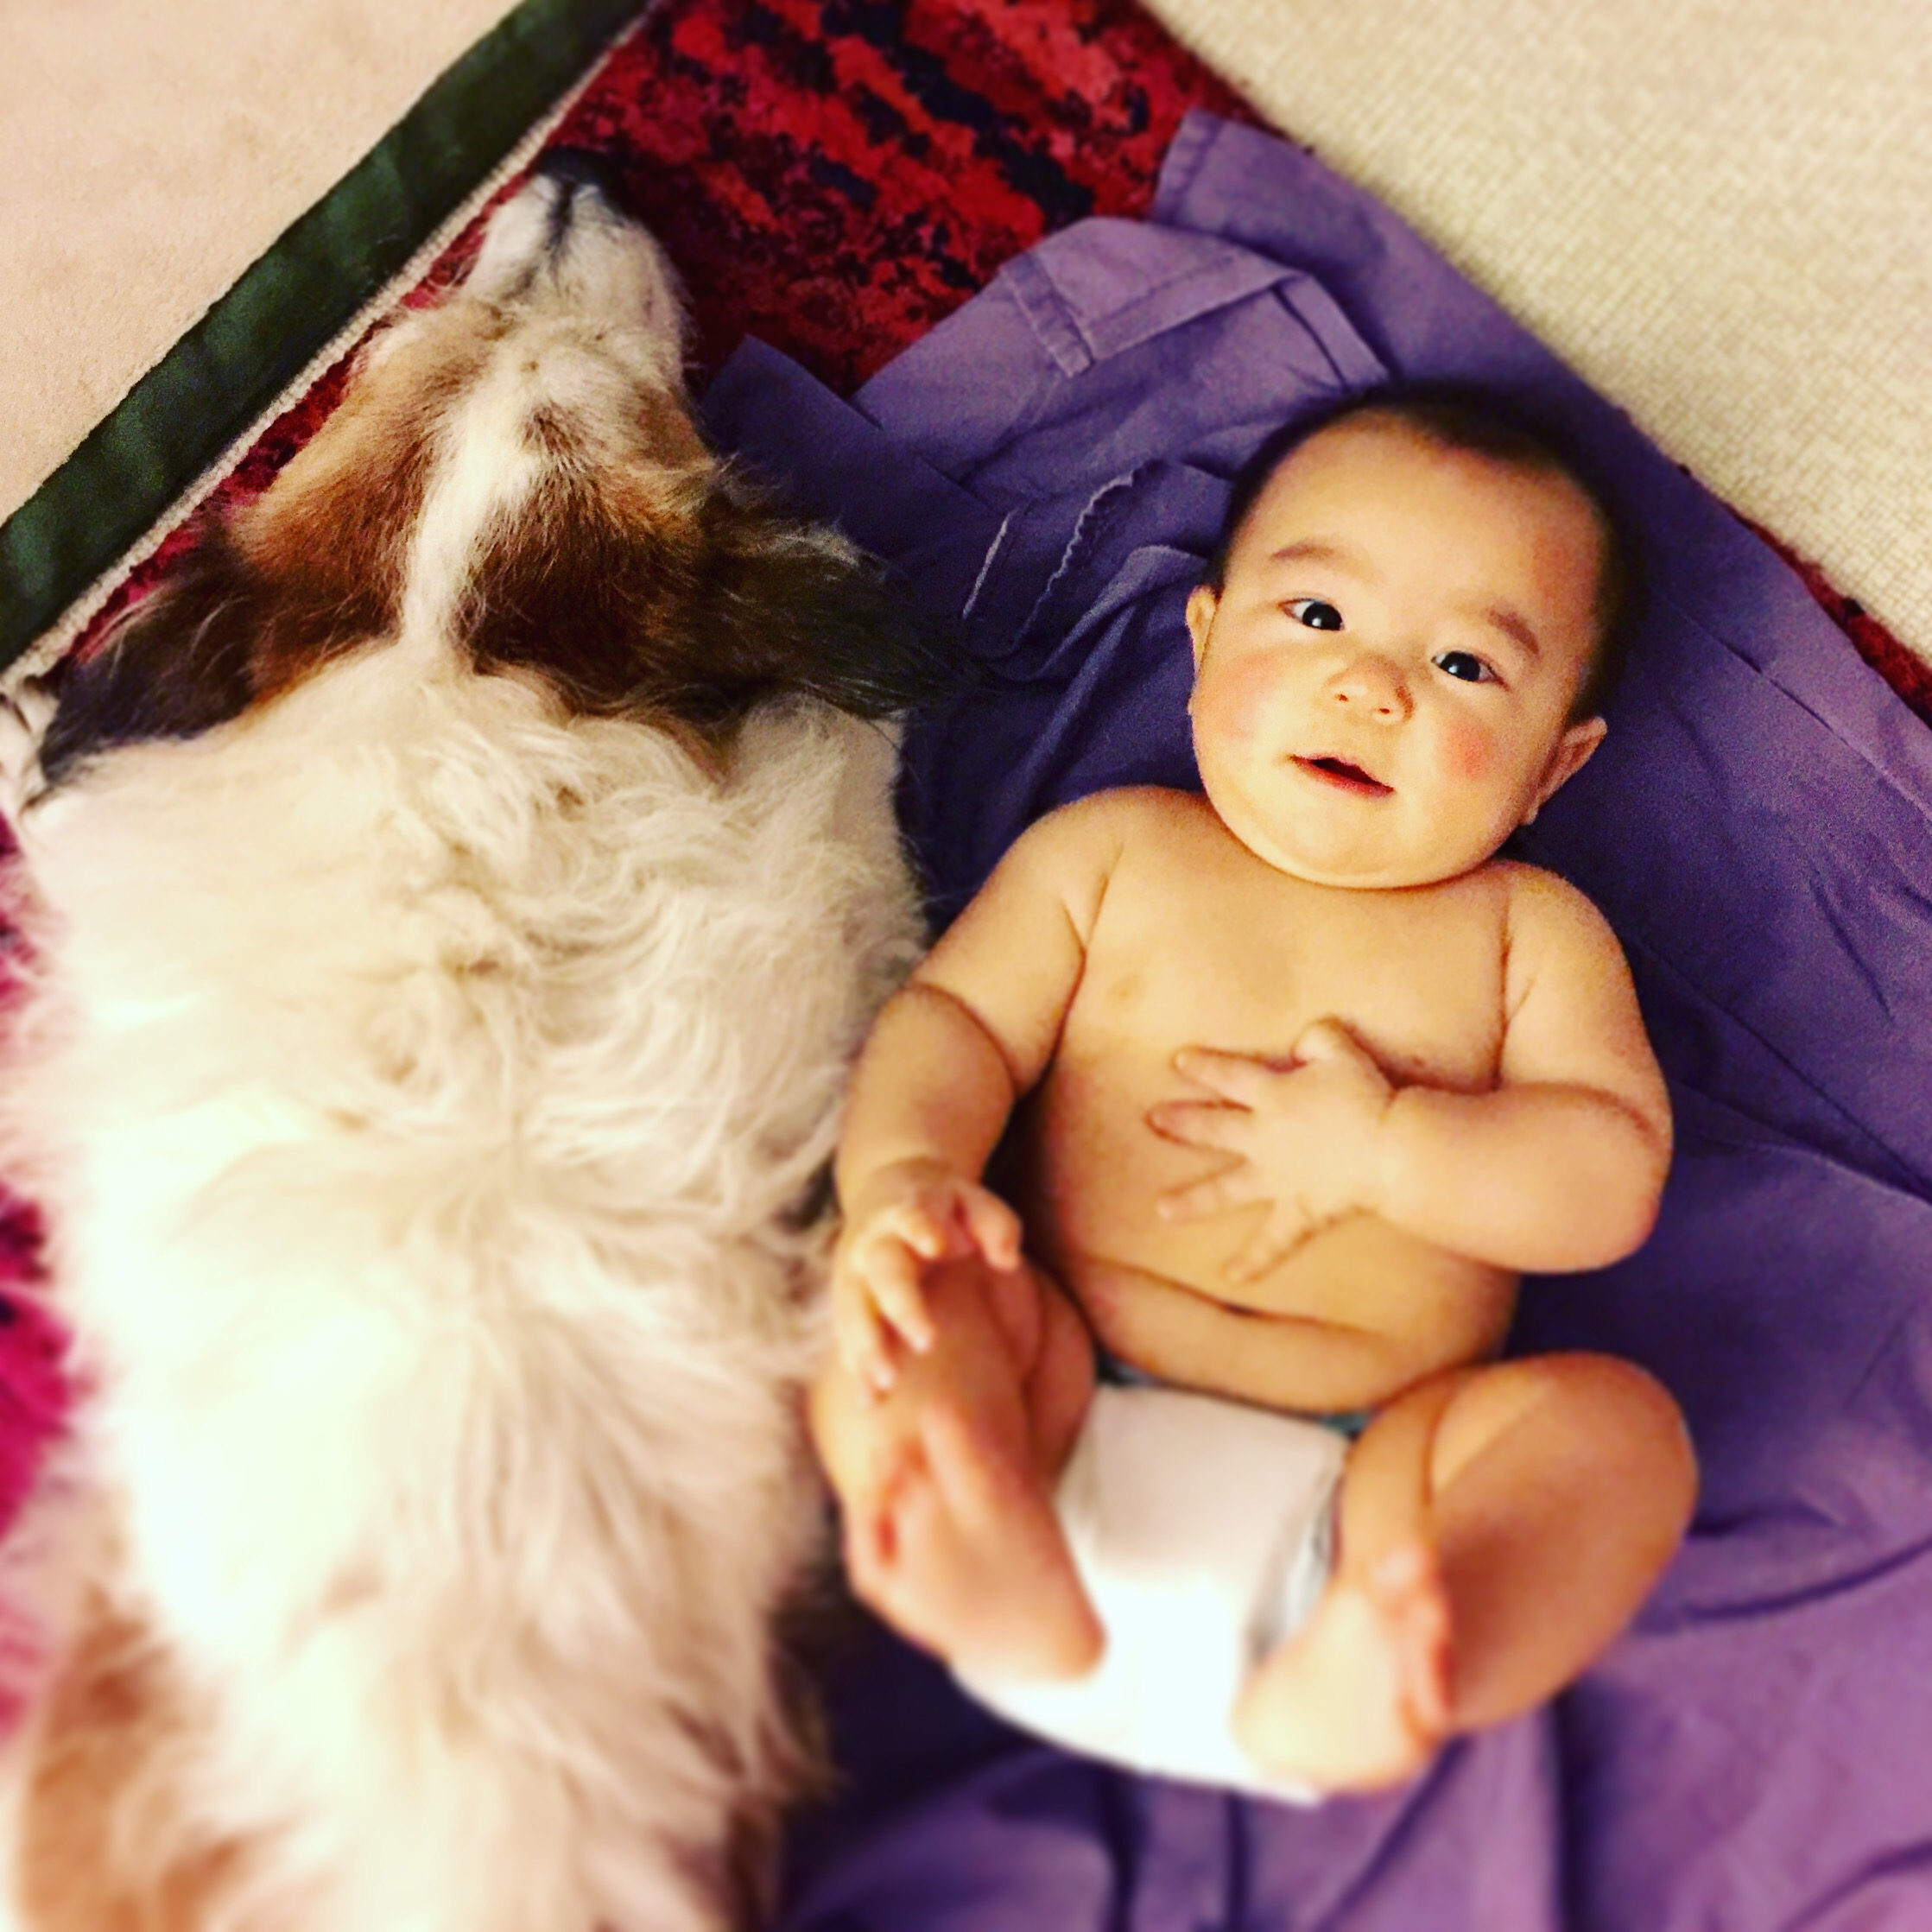 A baby with a dog